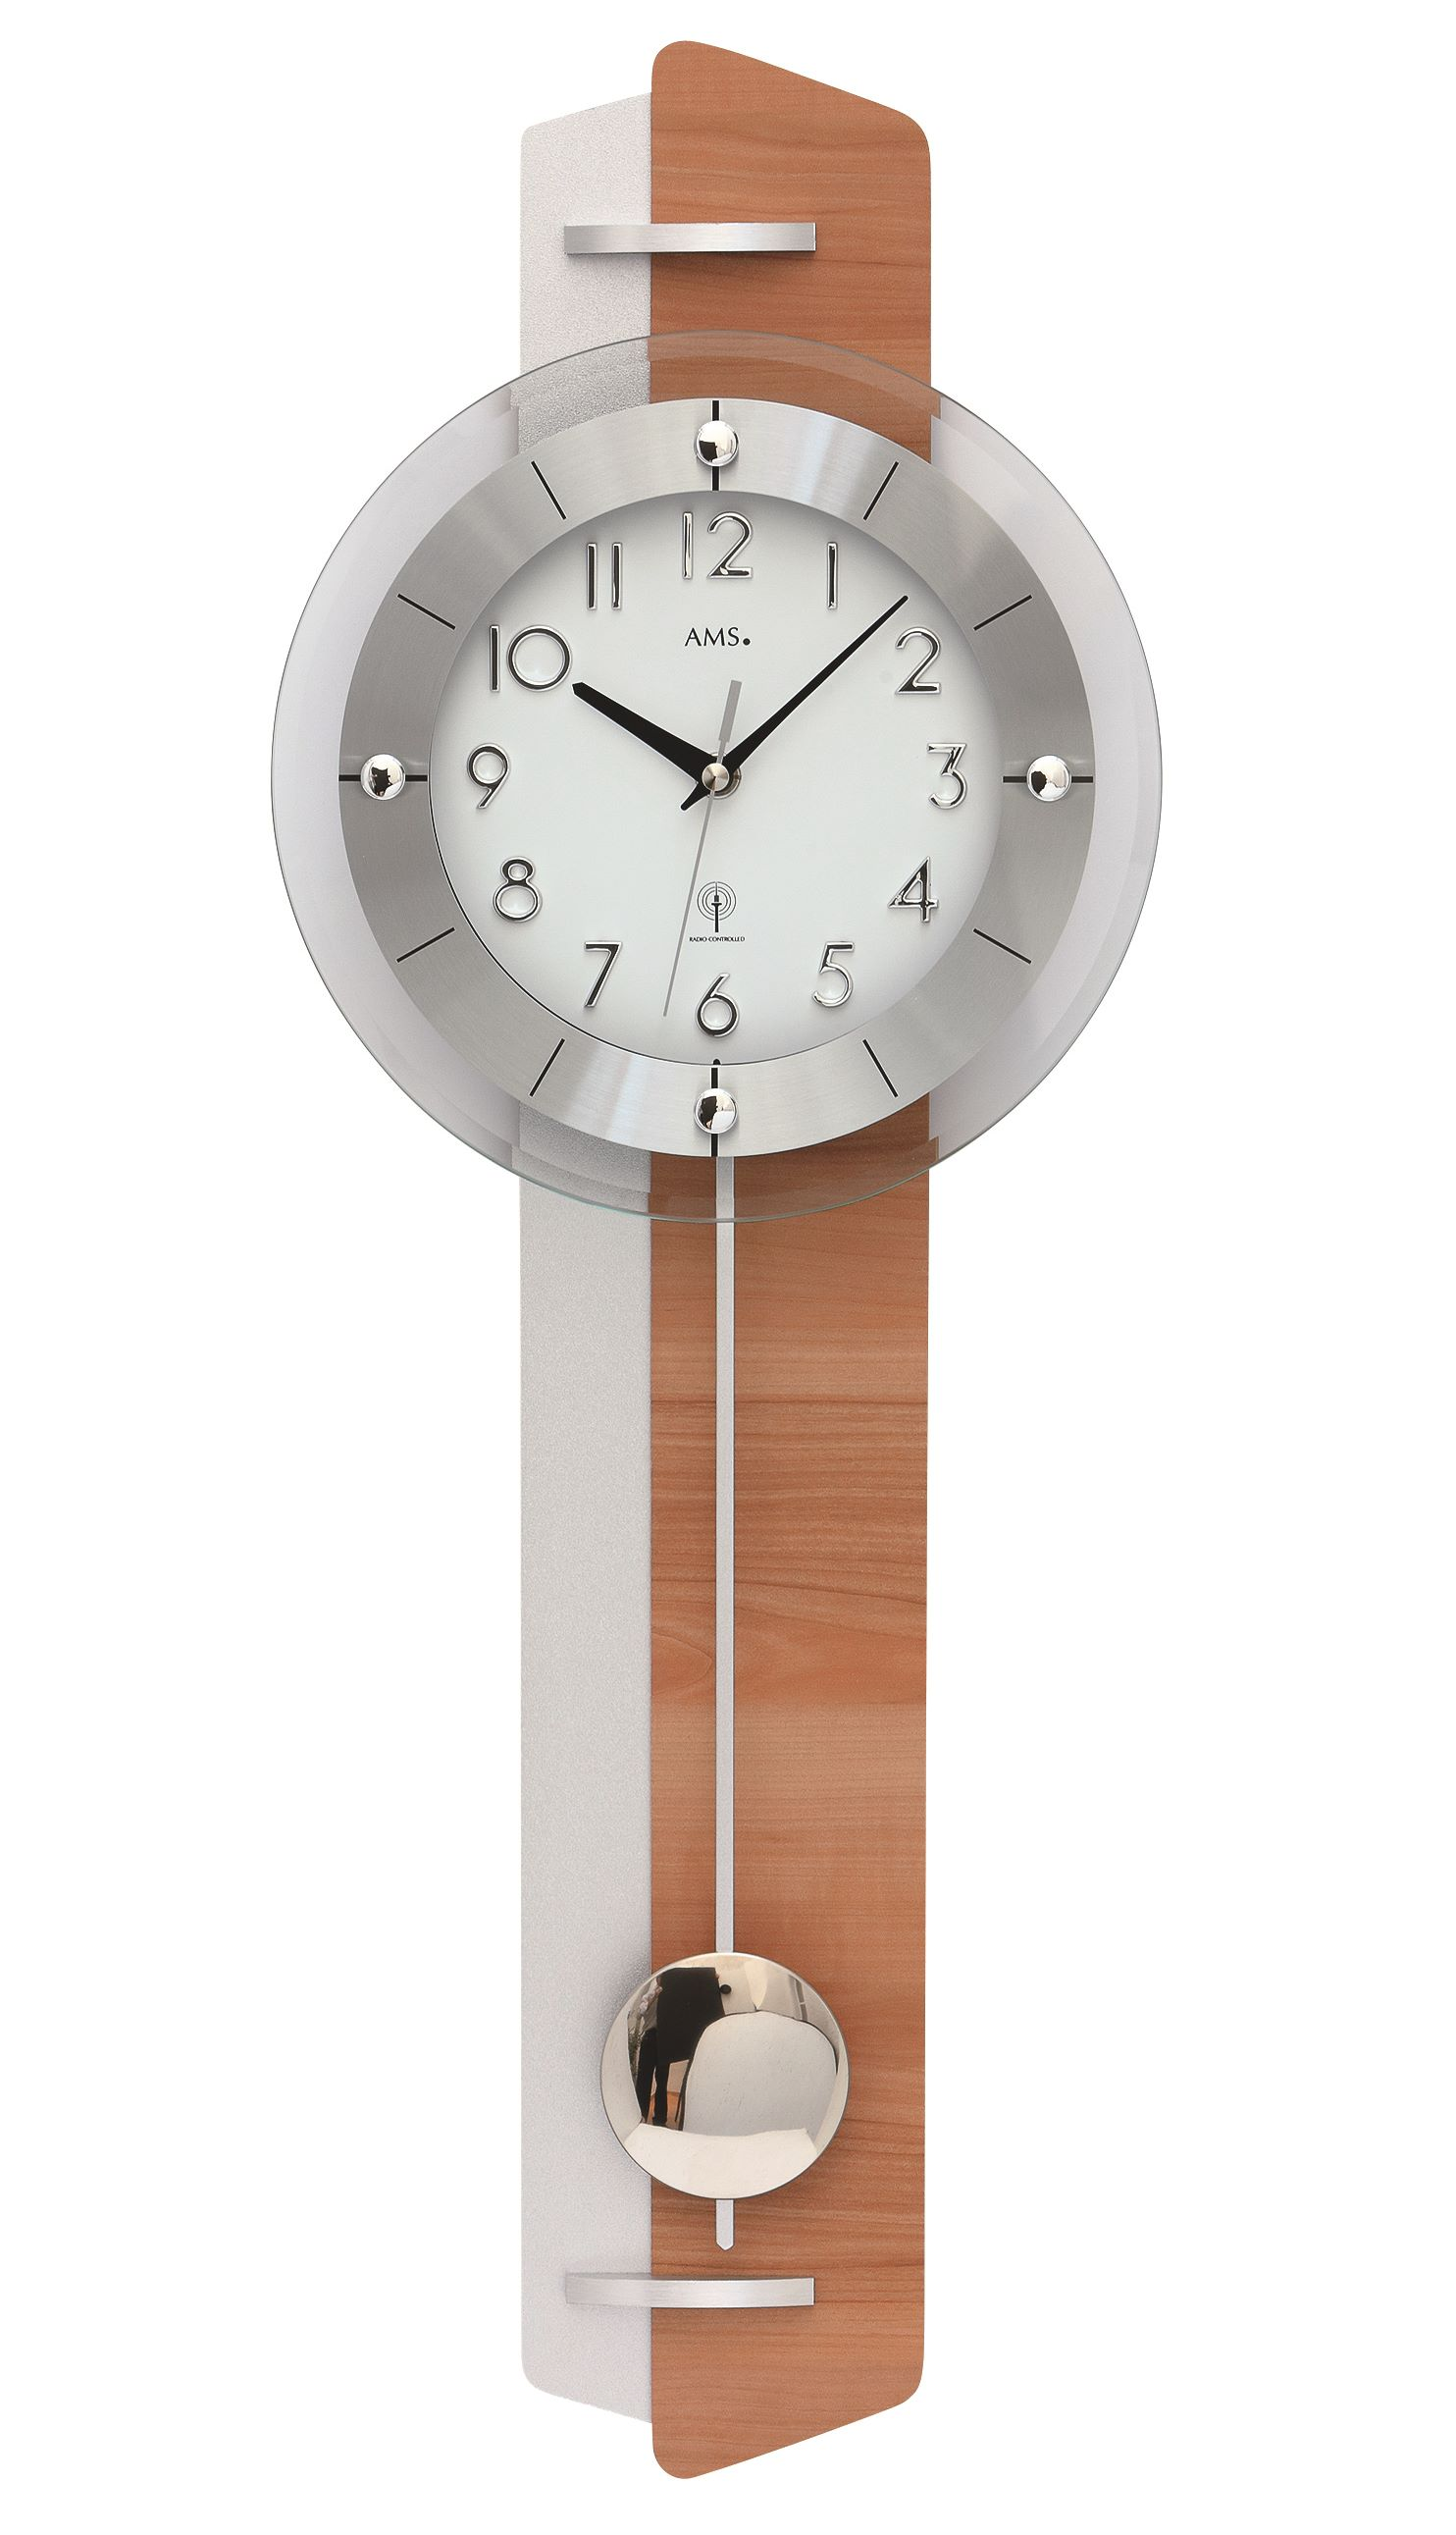 AMS -casilina- 5271 Modern Wall Clock with Funkwerk, Radio ...